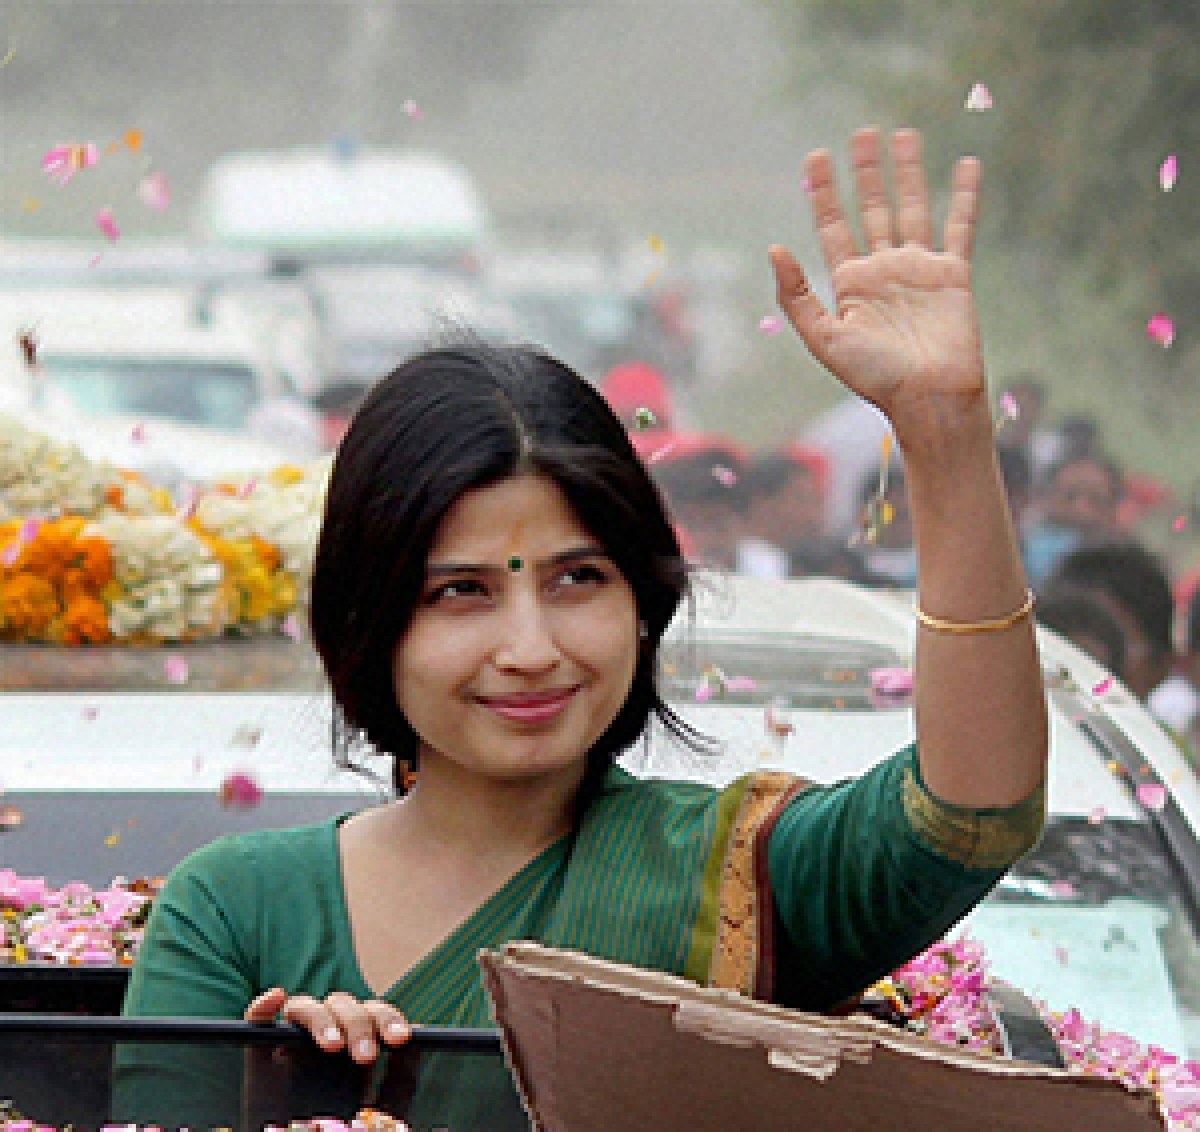 Crime against women should be dealt with seriousness: Dimple